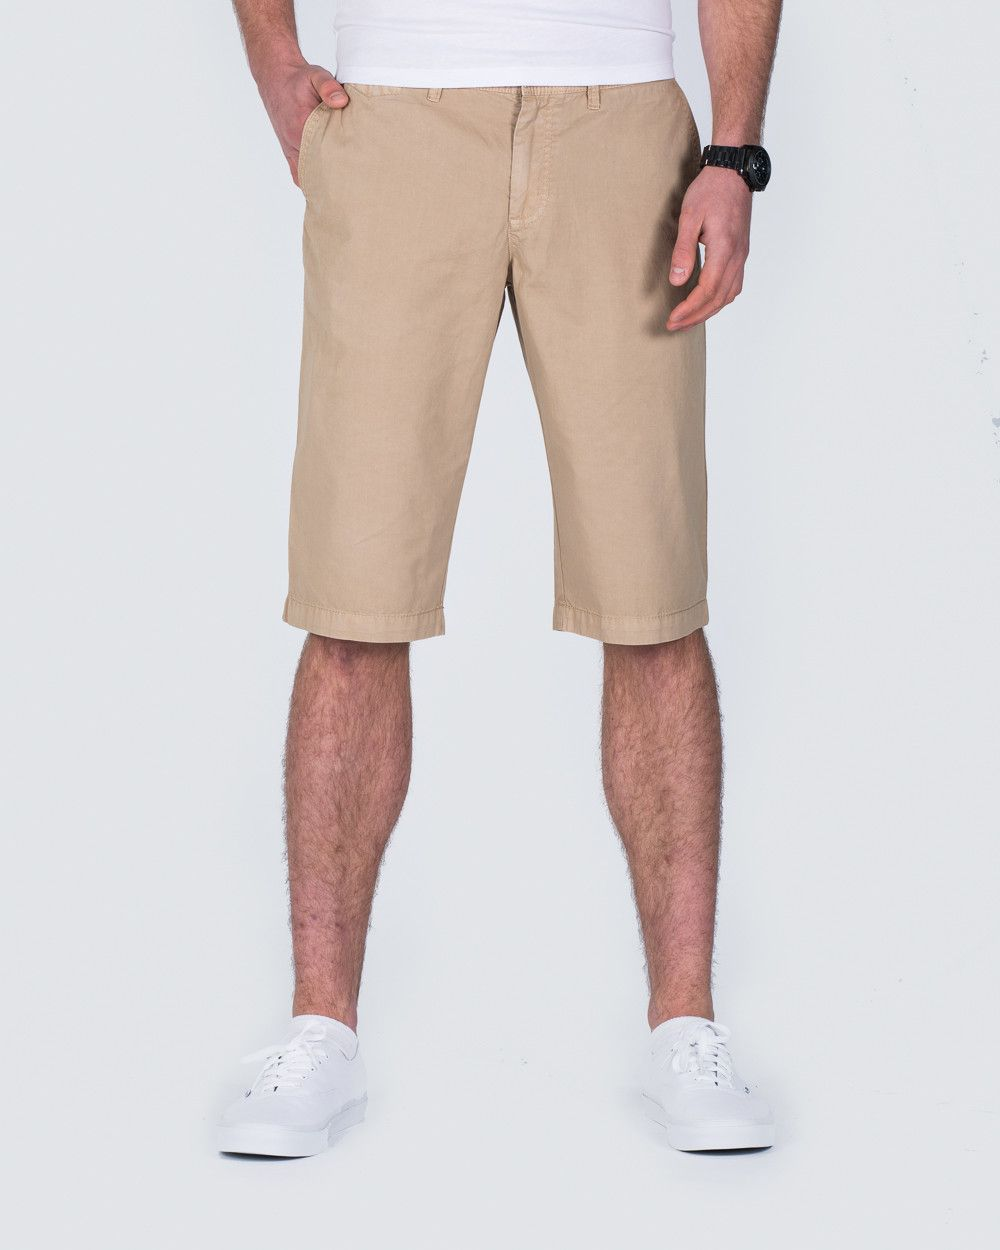 Redpoint Tailored Chino Shorts (beige) | Extra Long Tall Mens ...